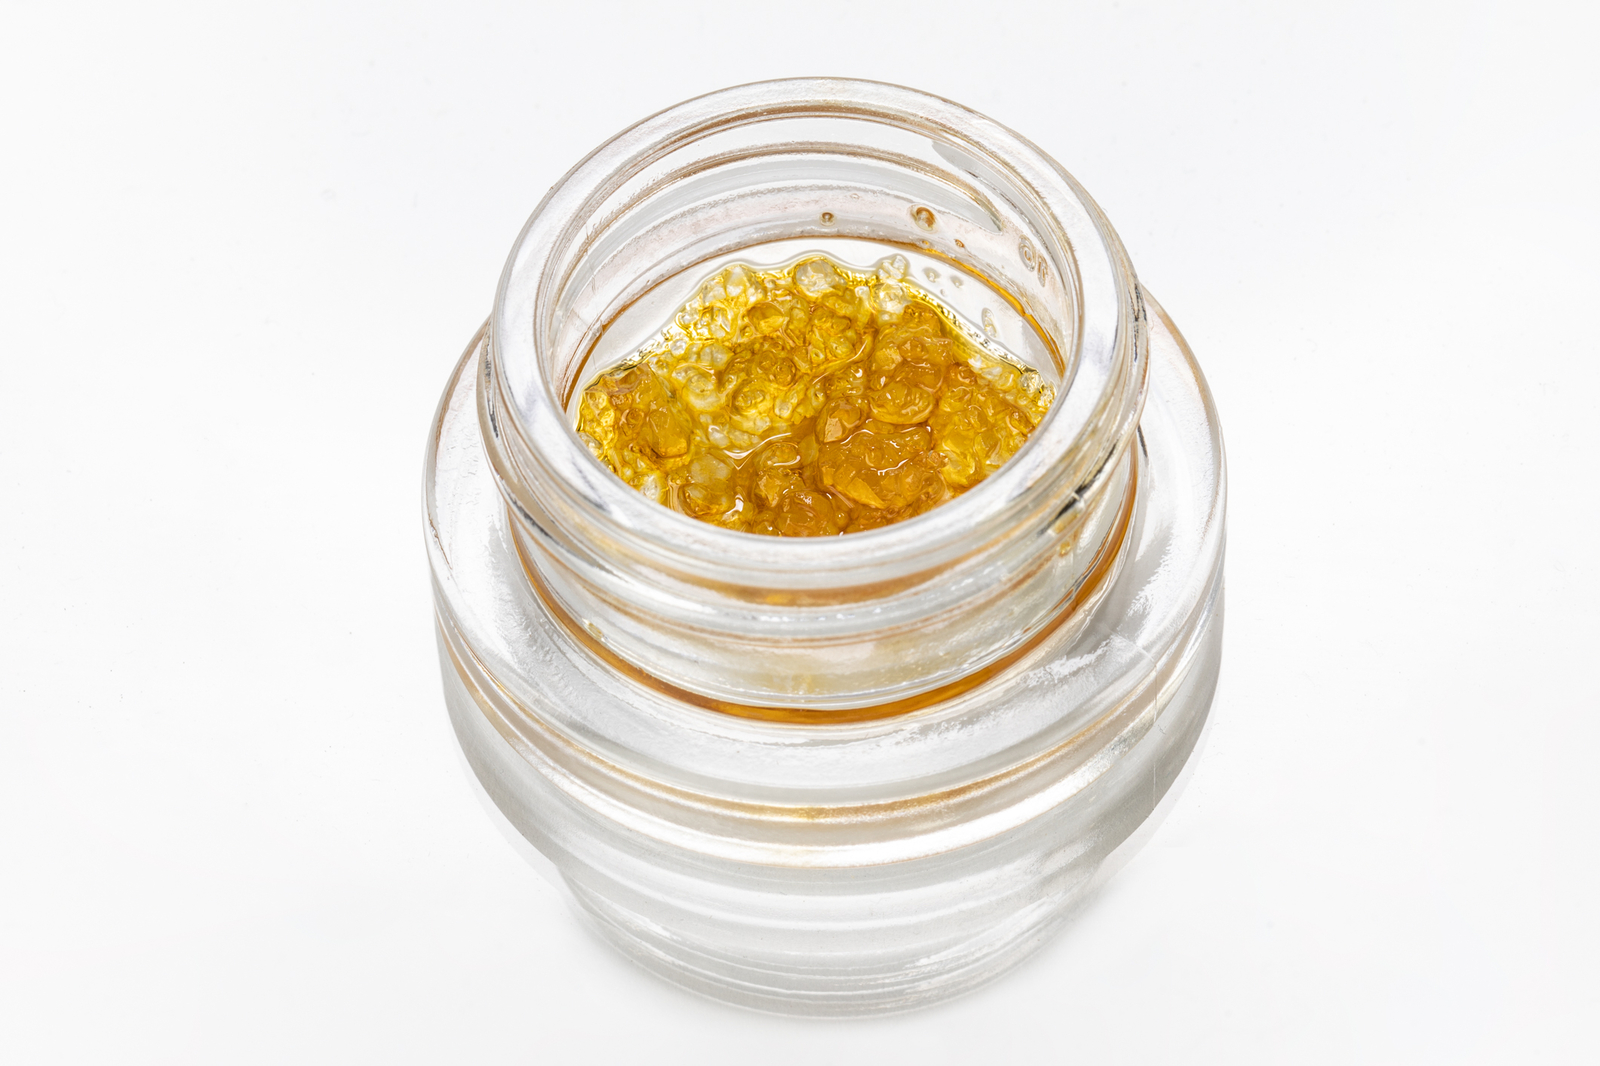 cannabis concentrate wax sauce